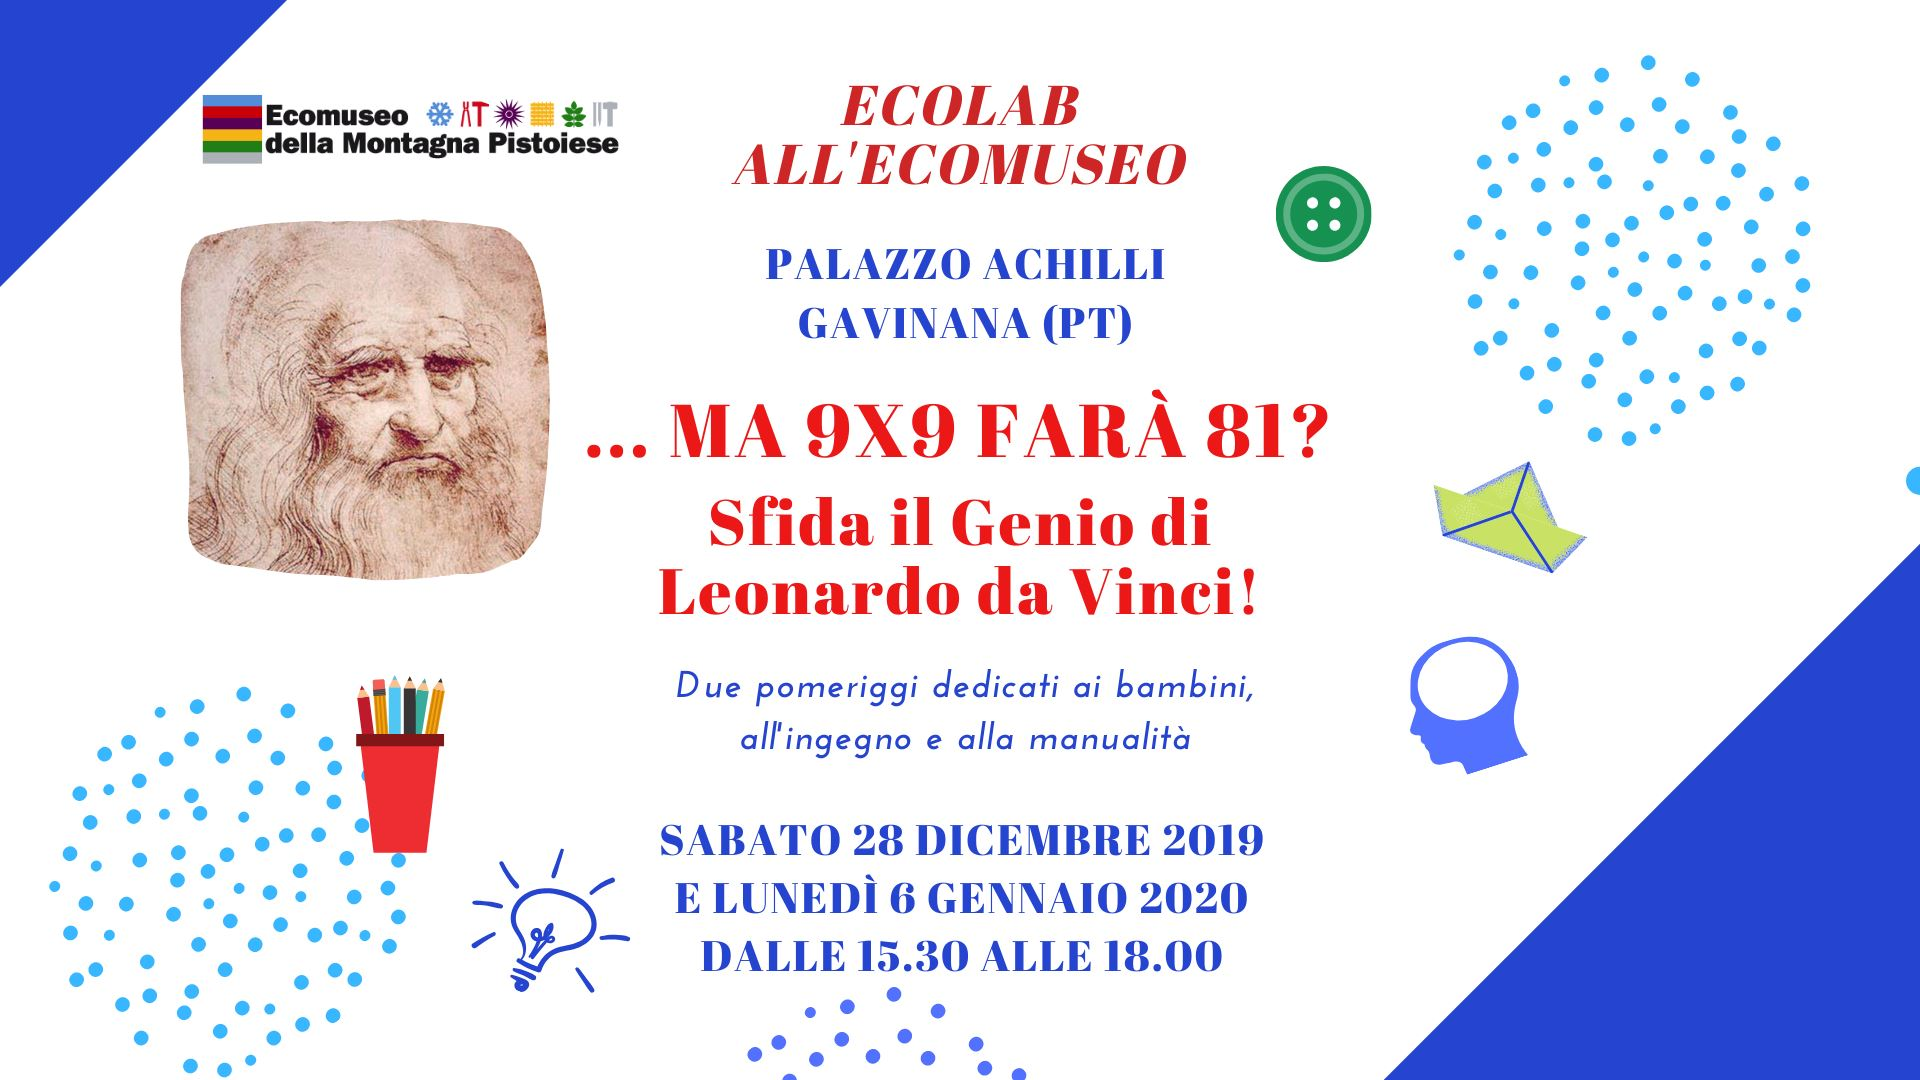 EcoLab – Laboratori all'Ecomuseo